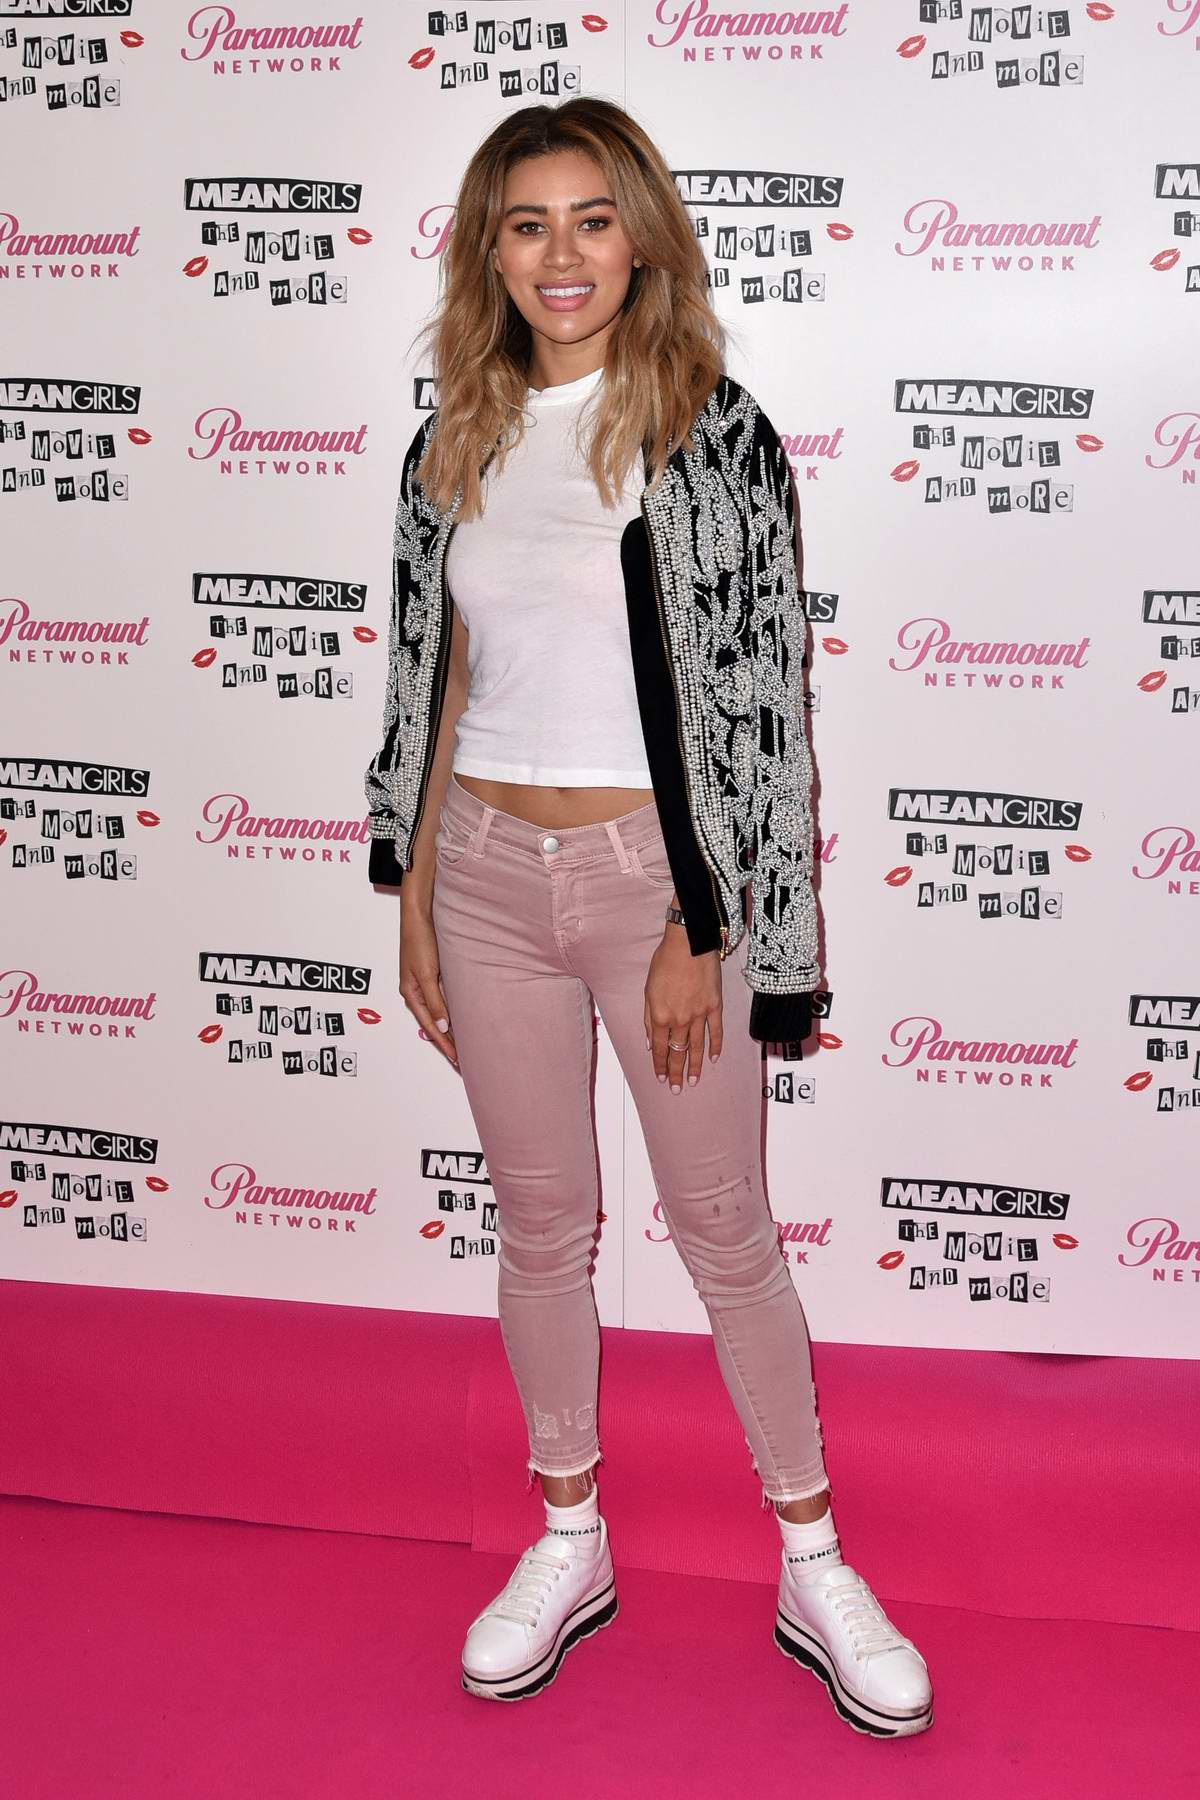 Montana Brown attends a screening event of 'Mean Girls: The Movie and More' in London, UK